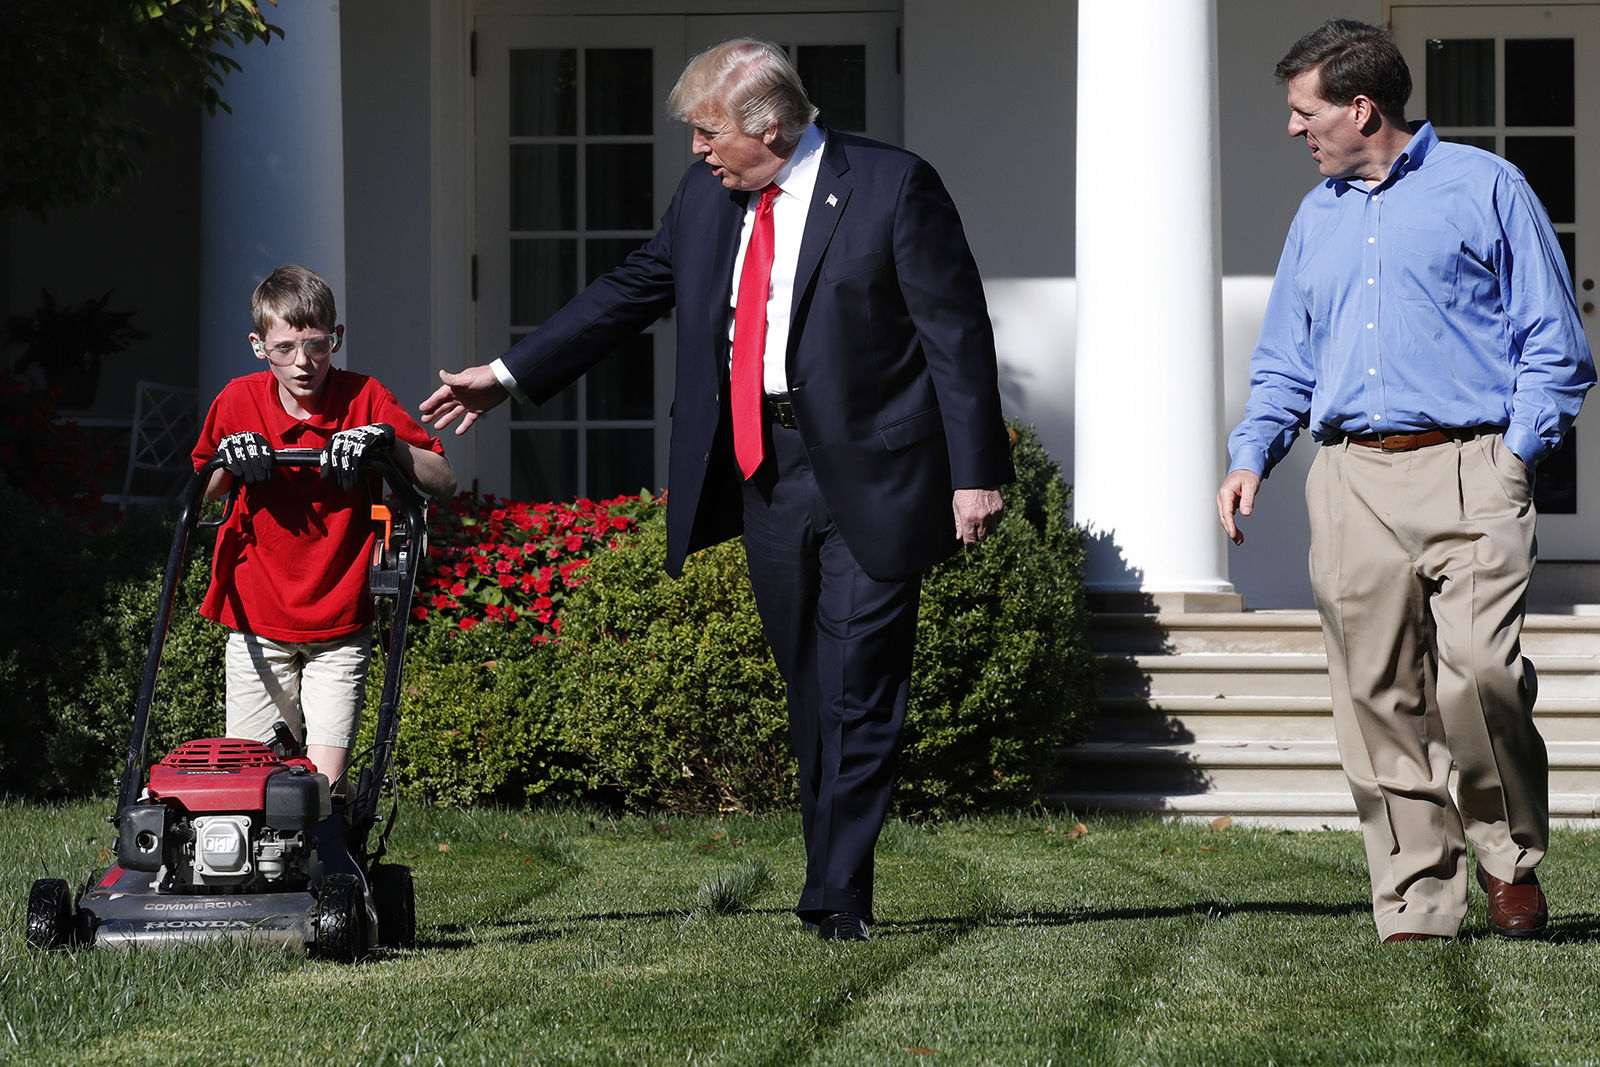 President Trump Greets Young Boy Who Offered To Mow White House Lawn